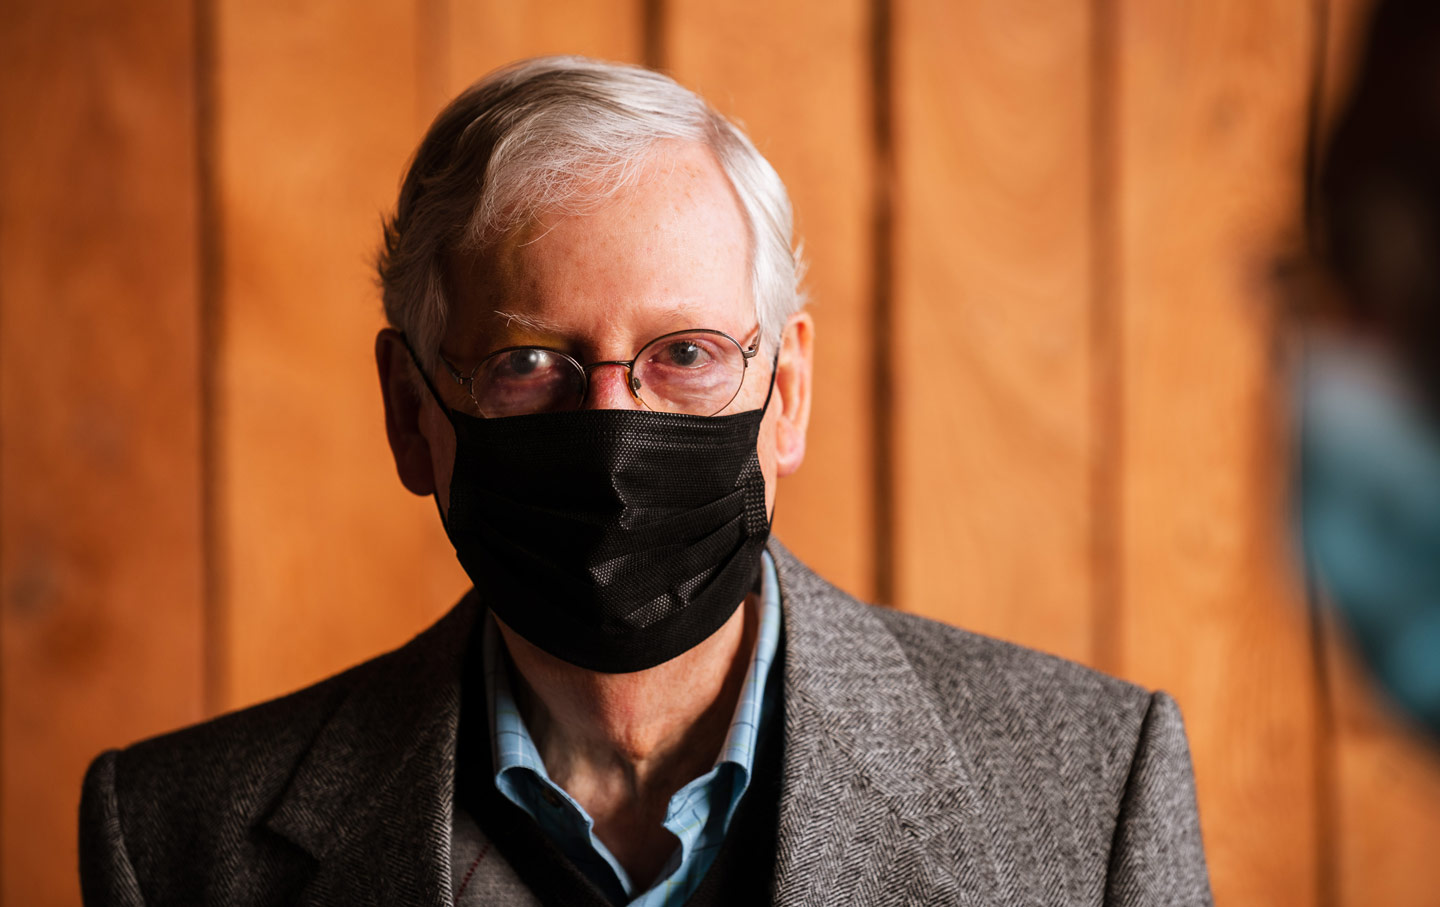 mcconnell-mask-glasses-stare-gty-img